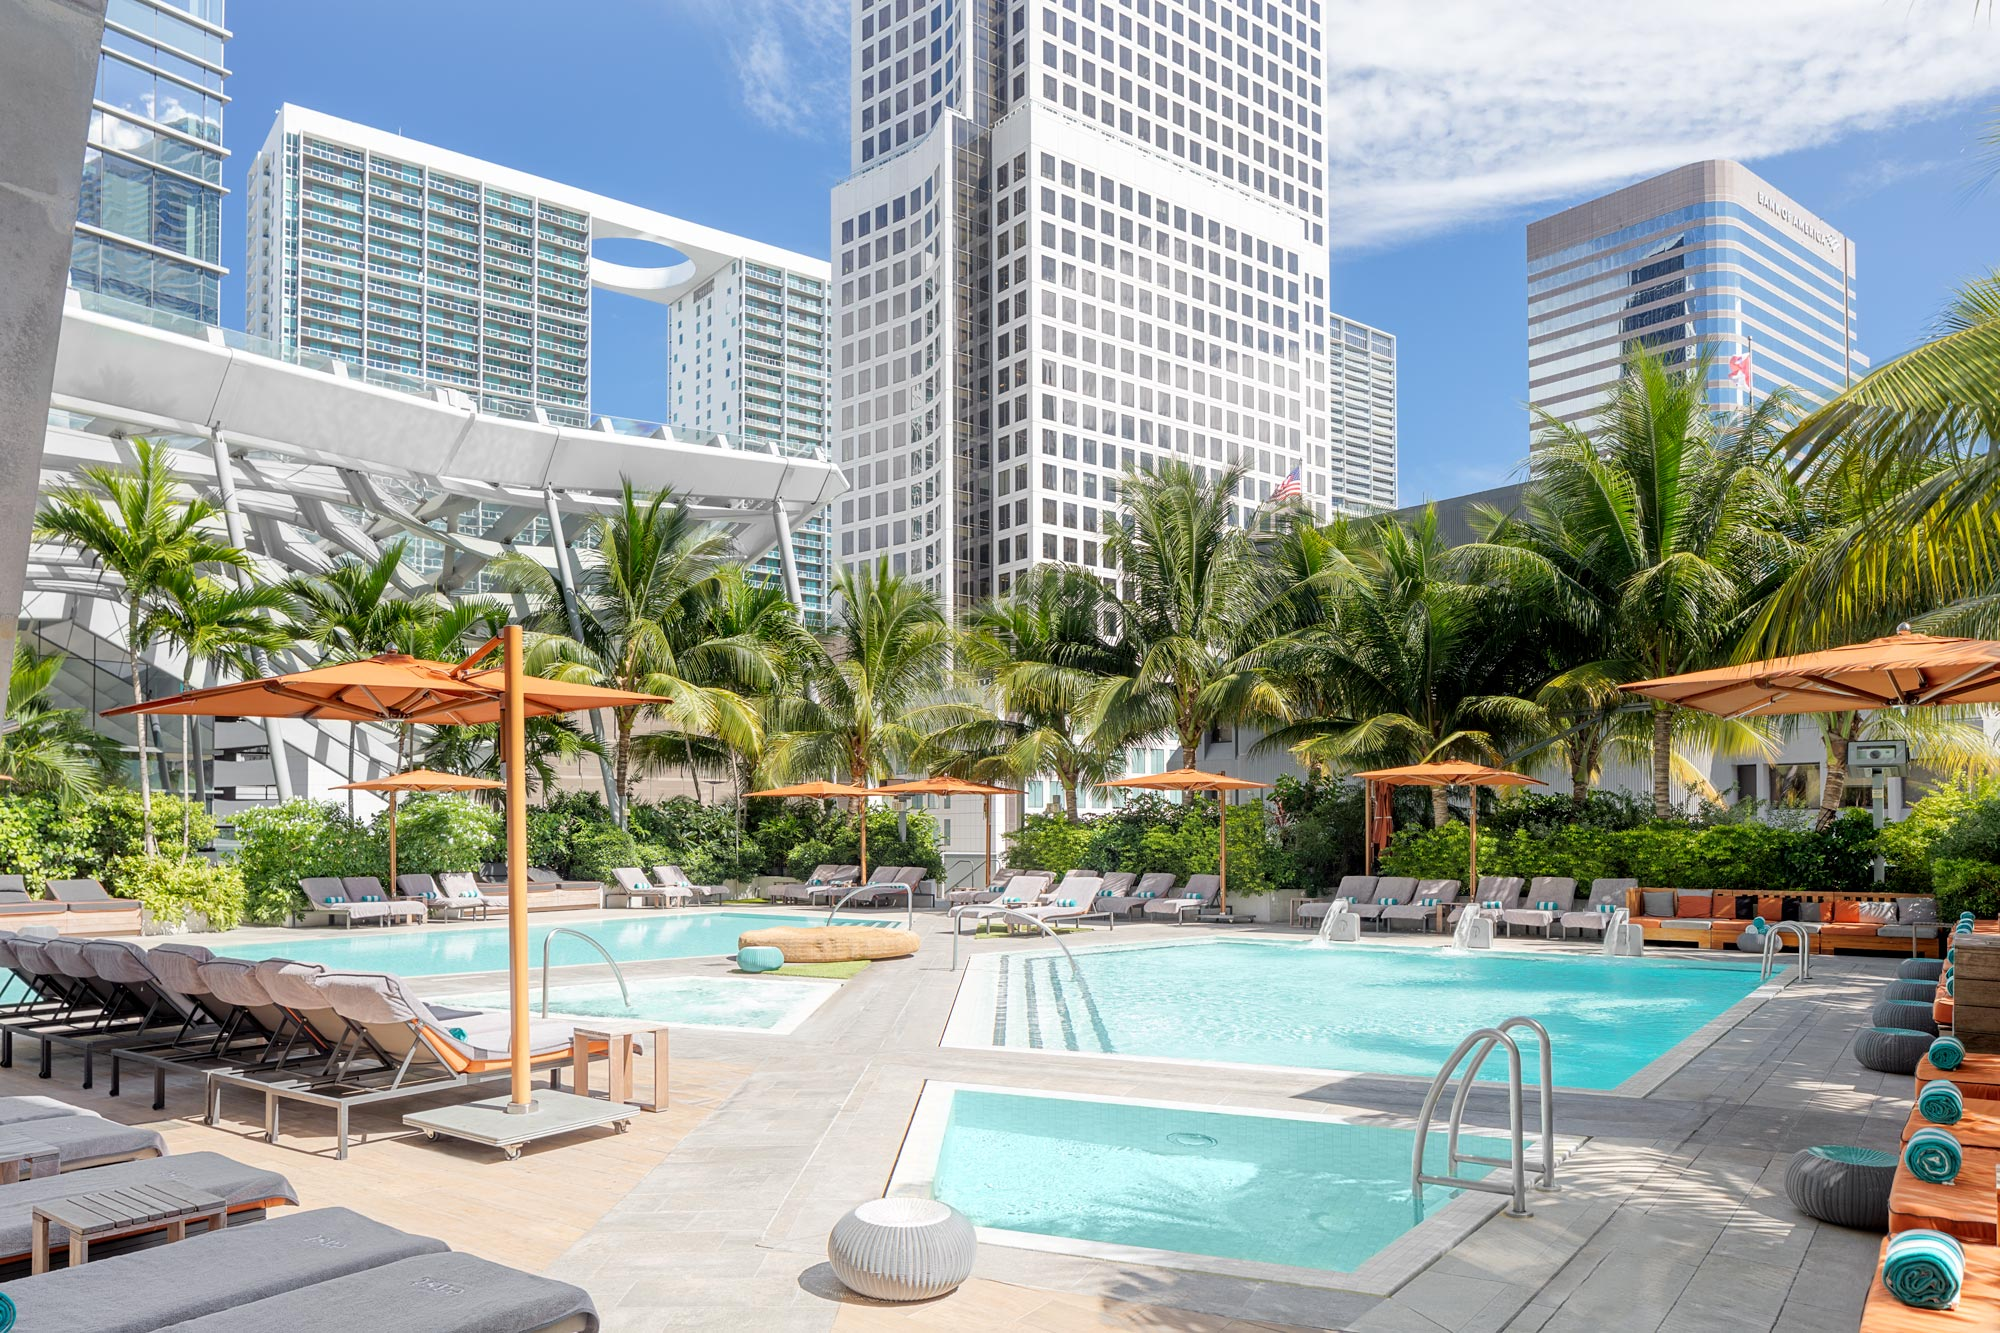 Hotel Pool Photography Miami Florida by Swiss Photographer Adrian Kilchherr, USA, Europe, Wordwide